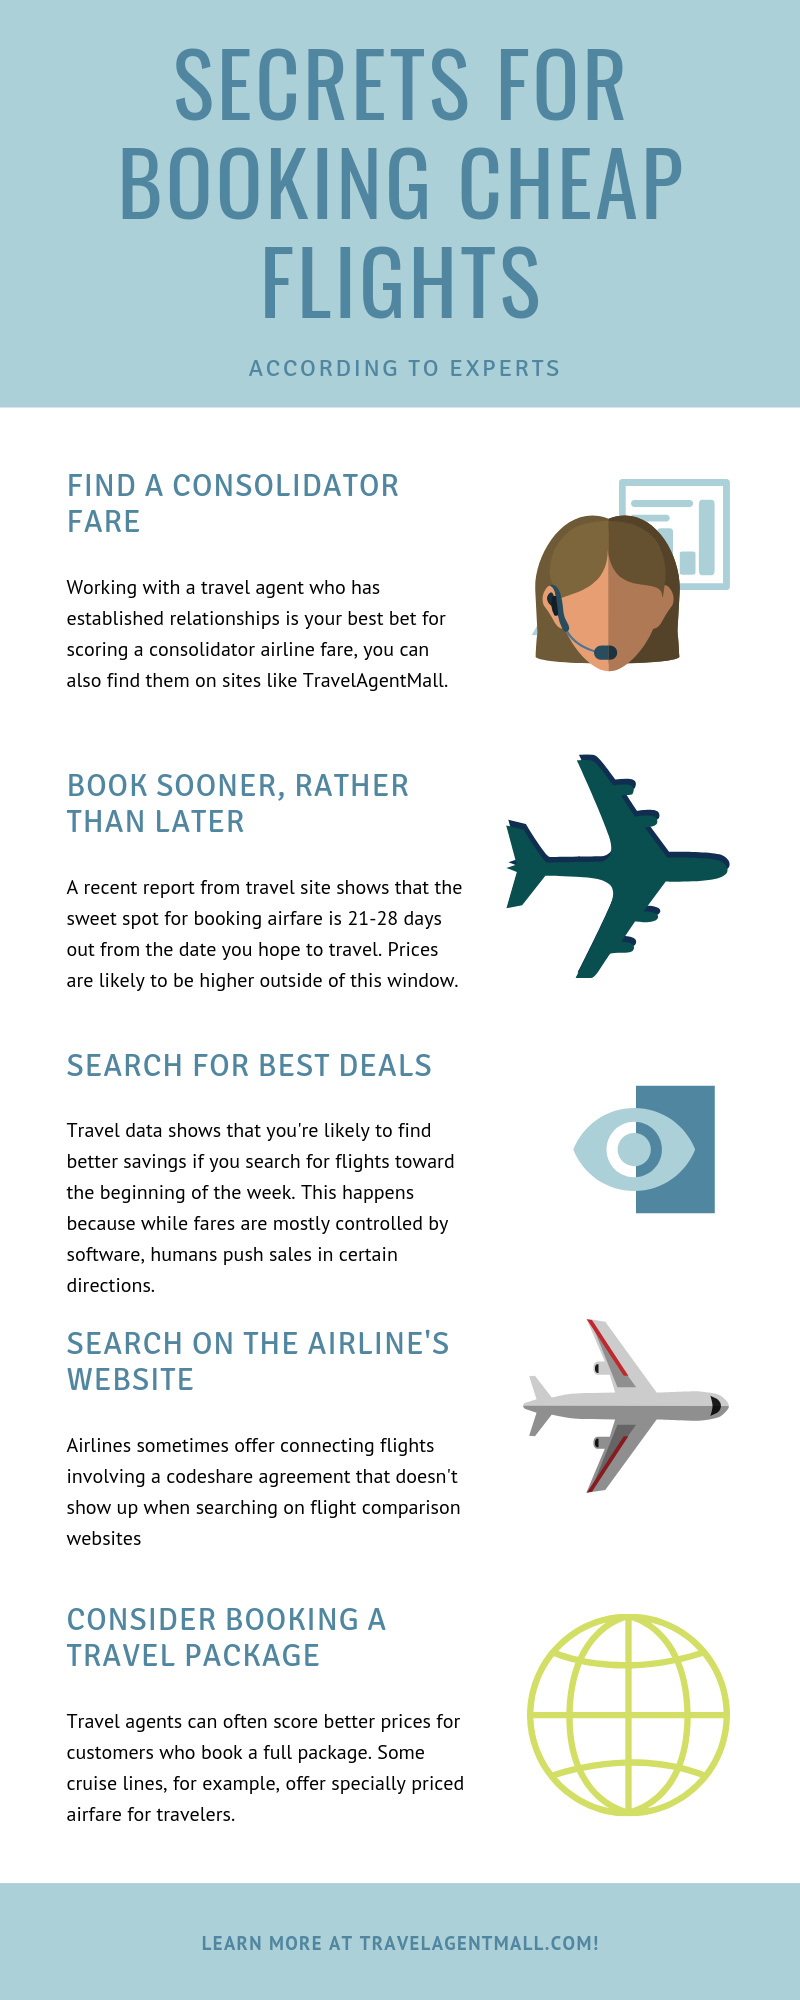 Top 7 Secrets for Booking Cheap Flights, according to experts